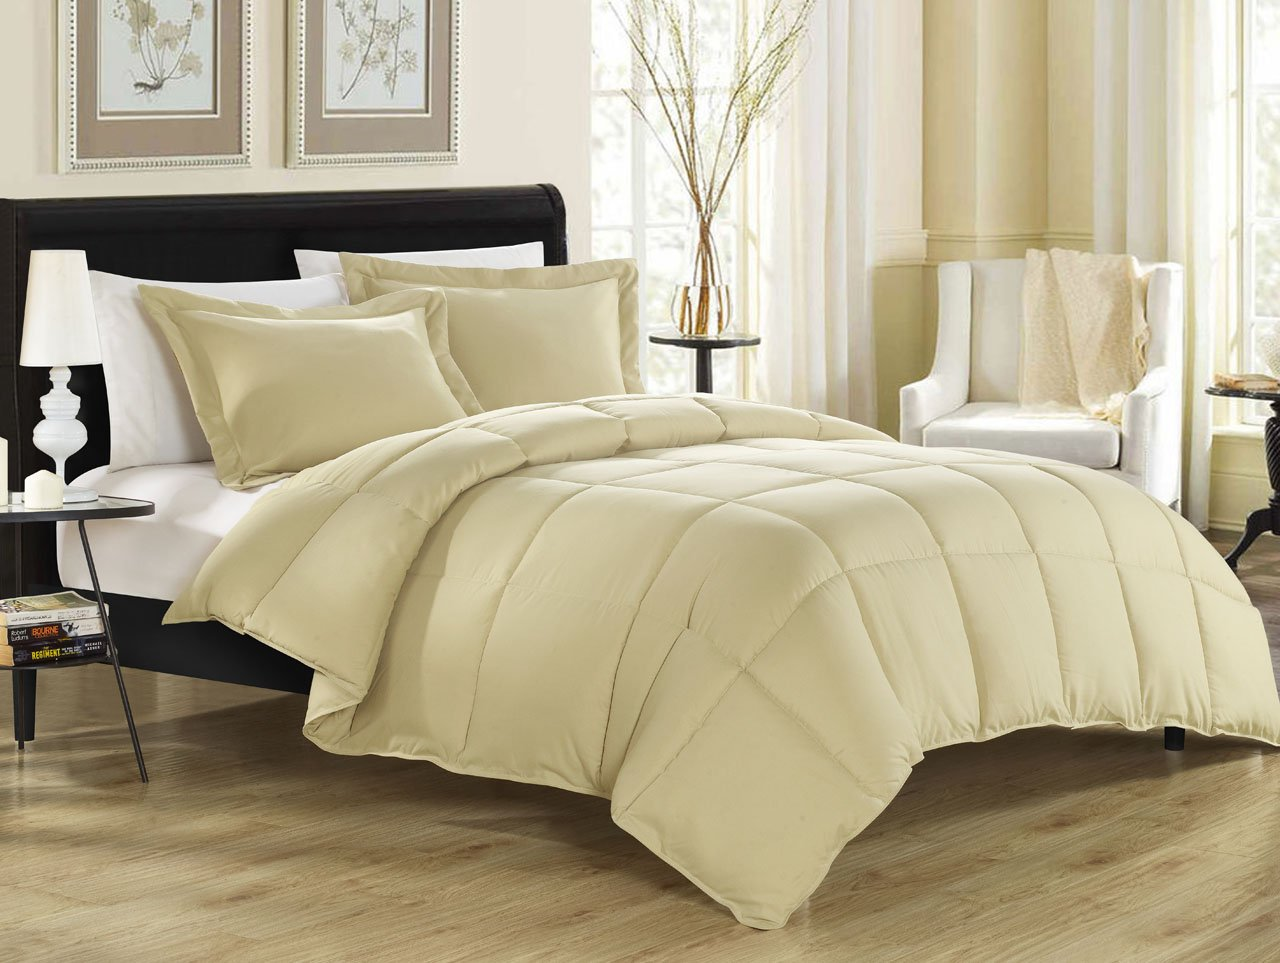 KingLinen® Khaki Down Alternative Comforter Set King